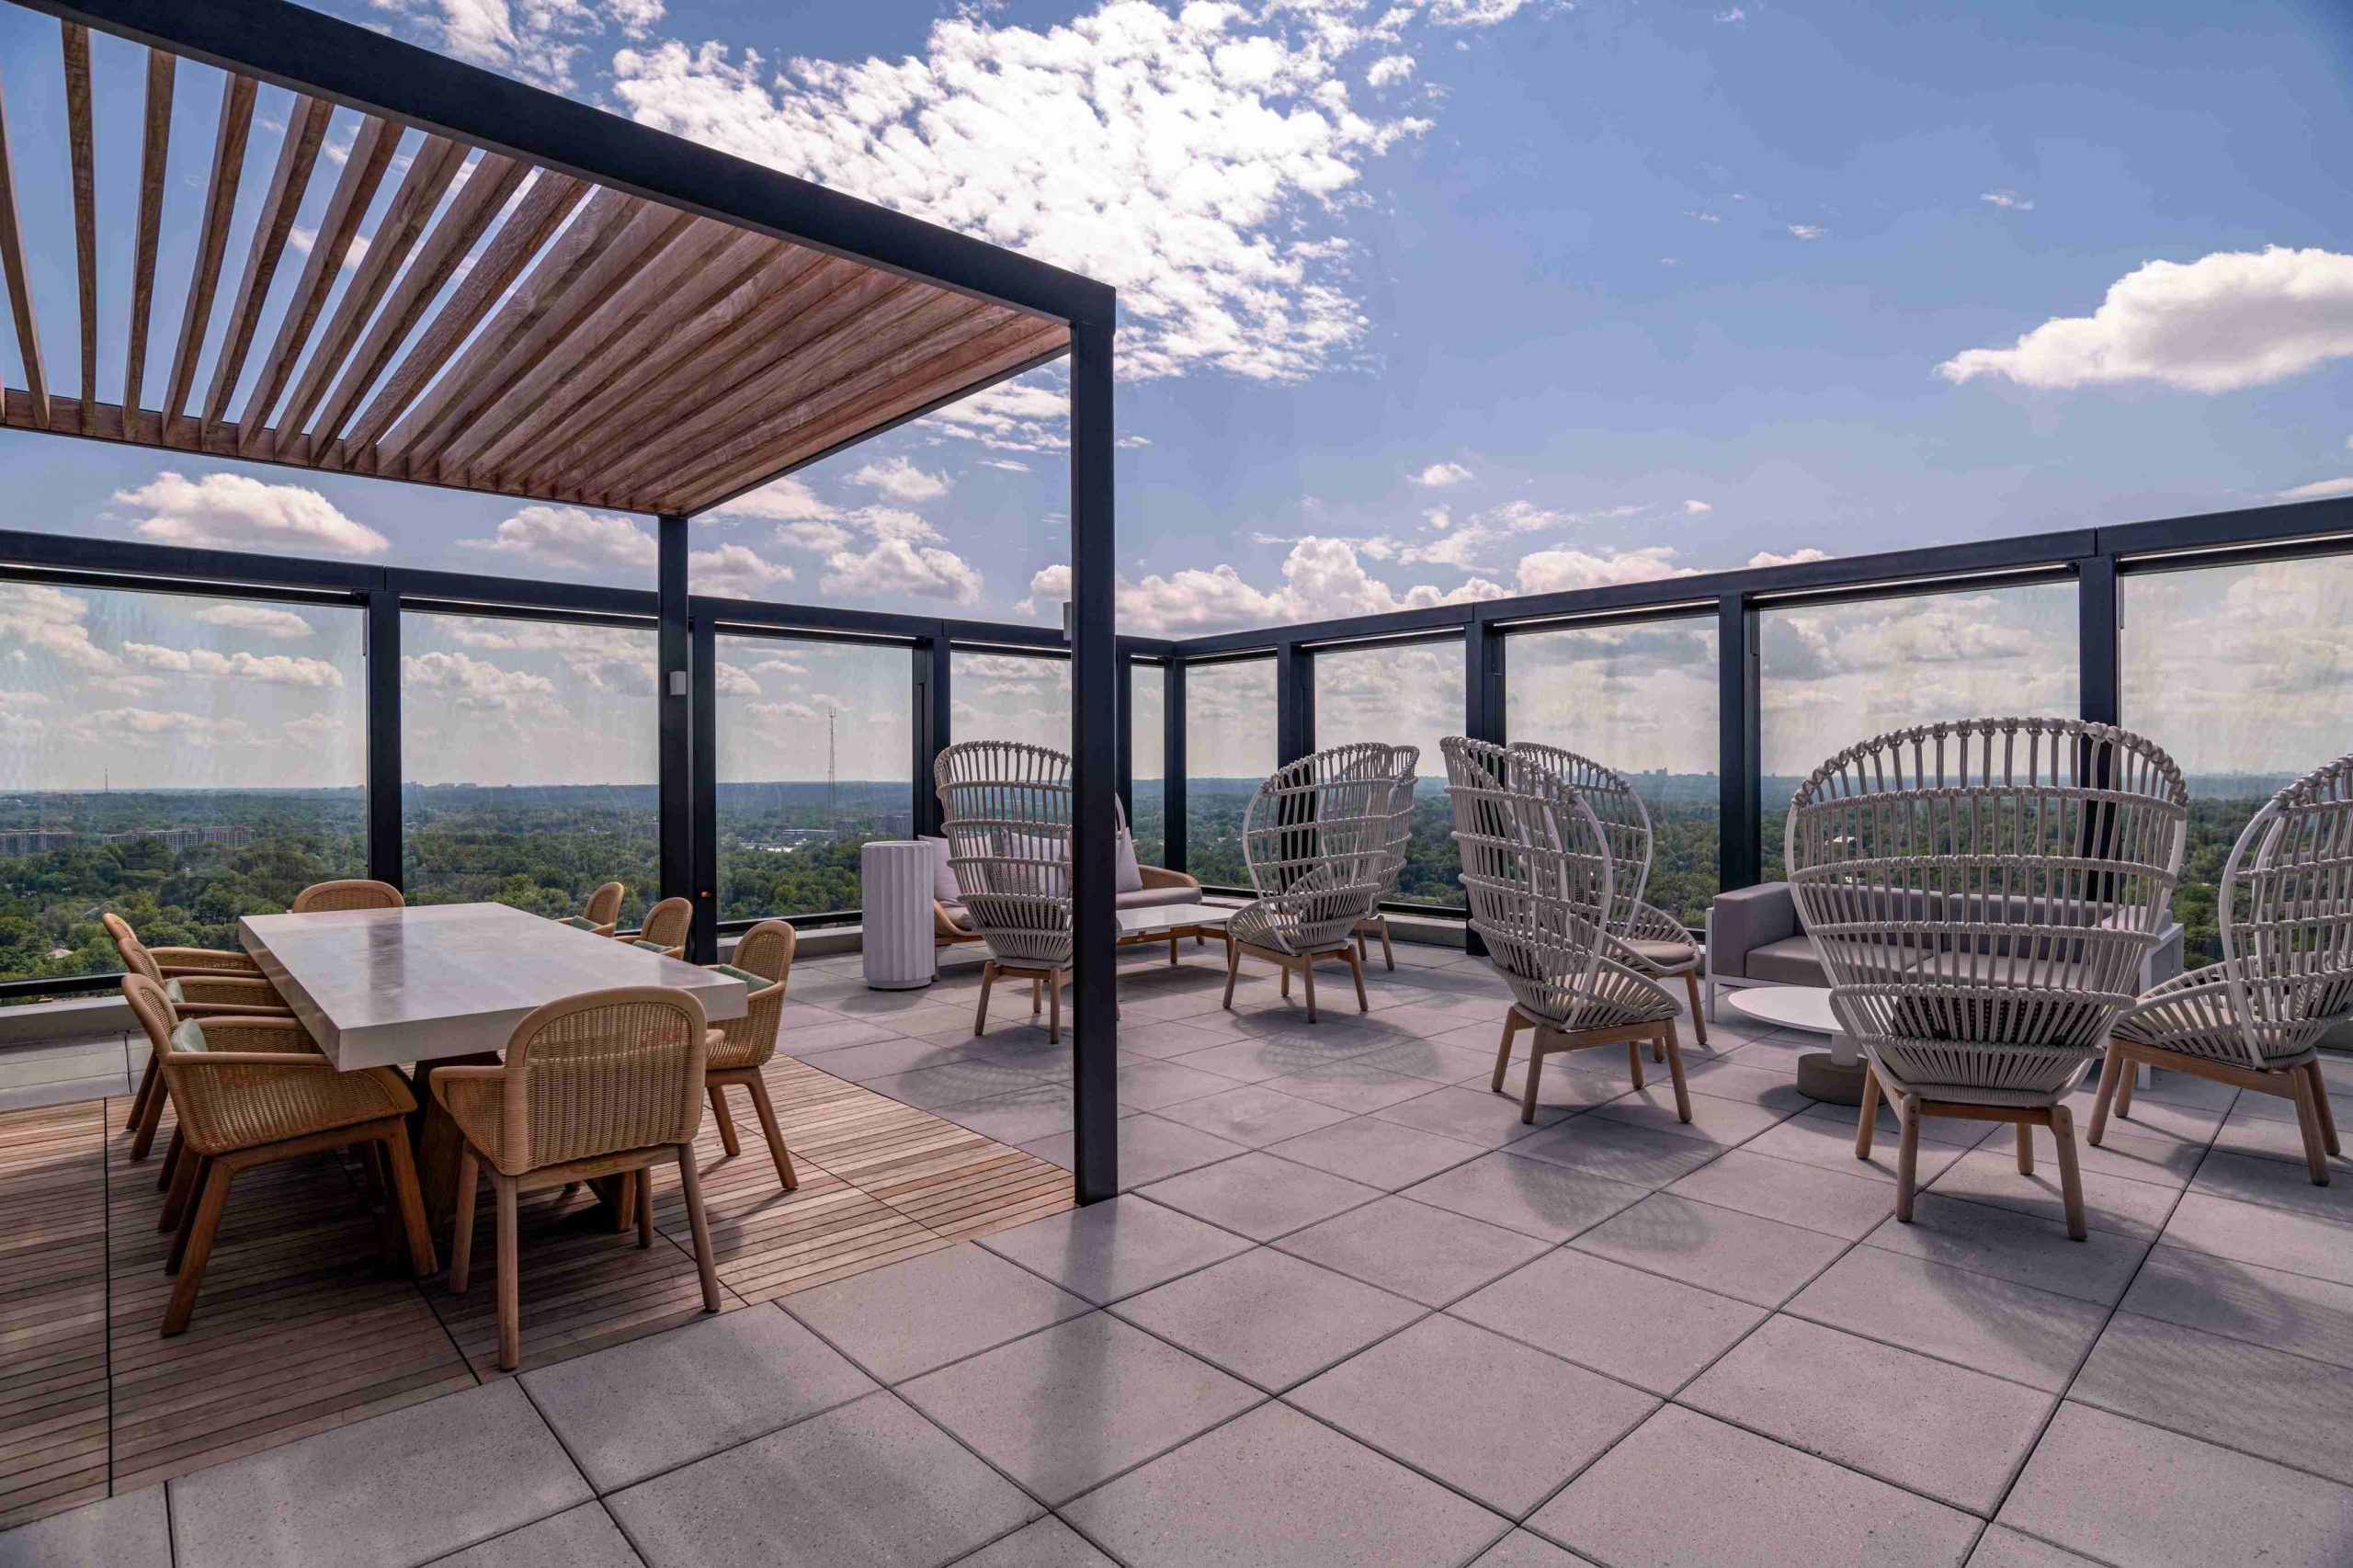 Ample space to relax and unwind in on this spacious outdoor rooftop.